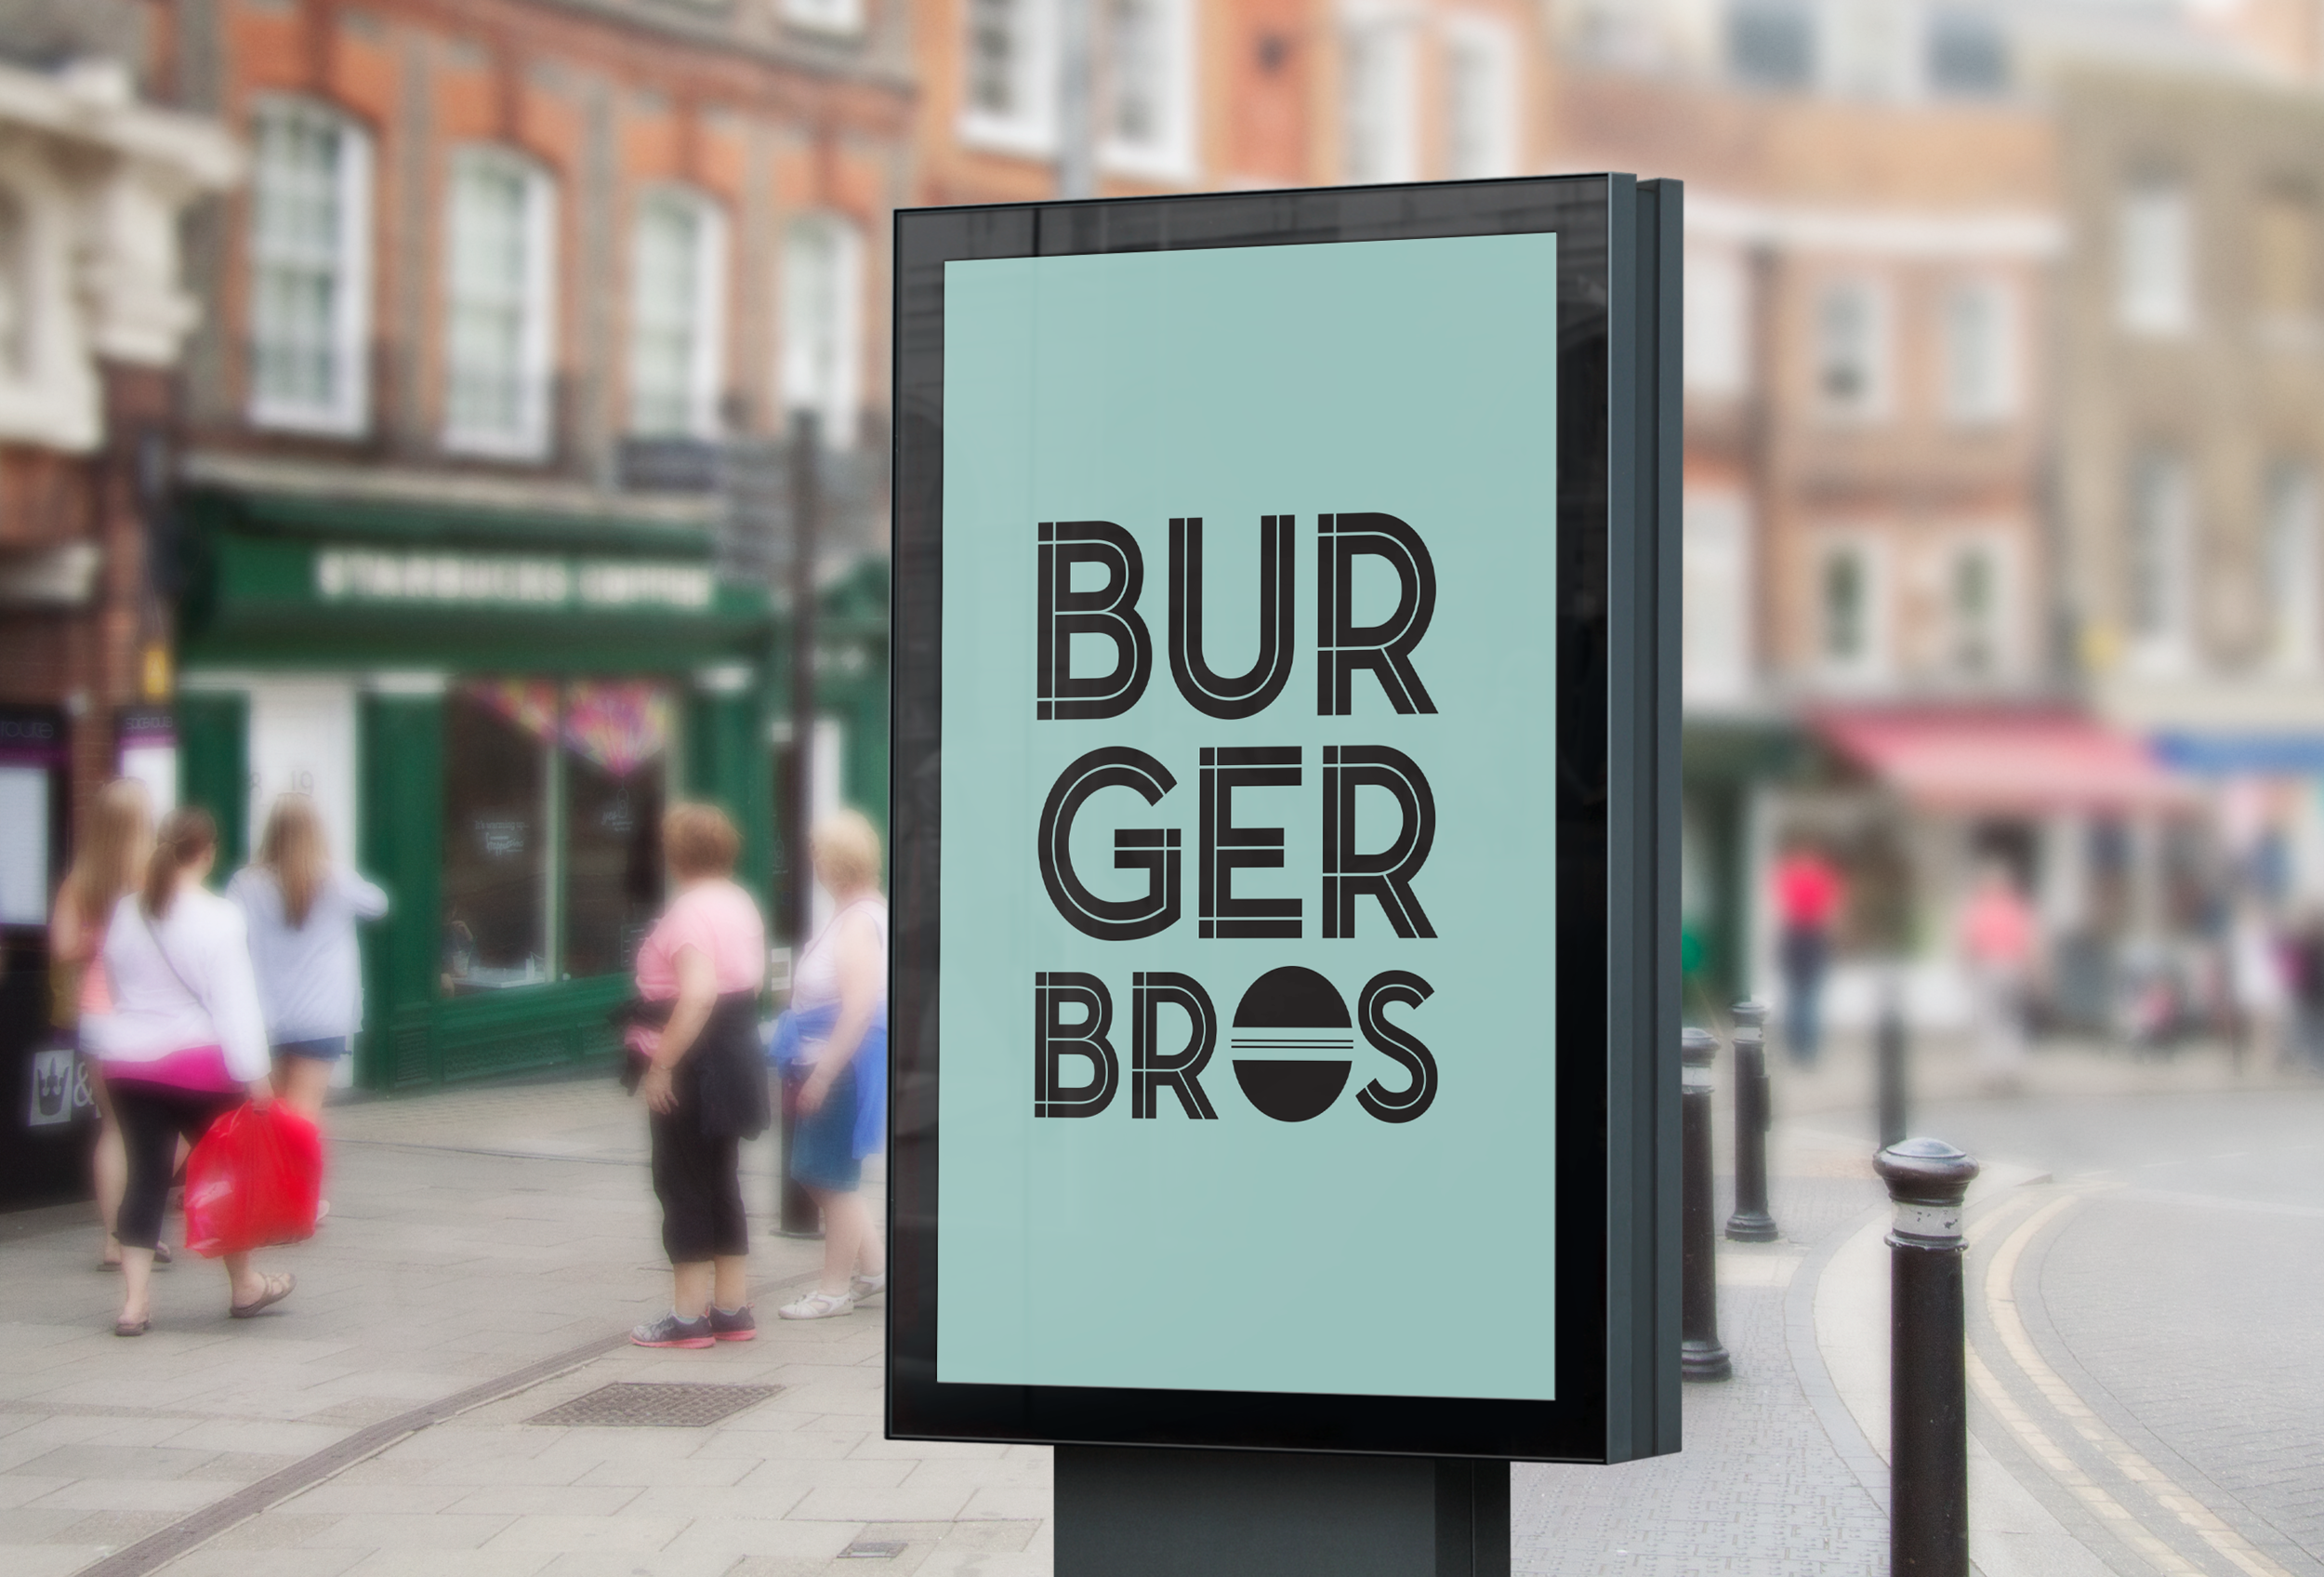 2017-09-03_BurgerBrothers_Ideation_LogoType_AdShelMockup.png